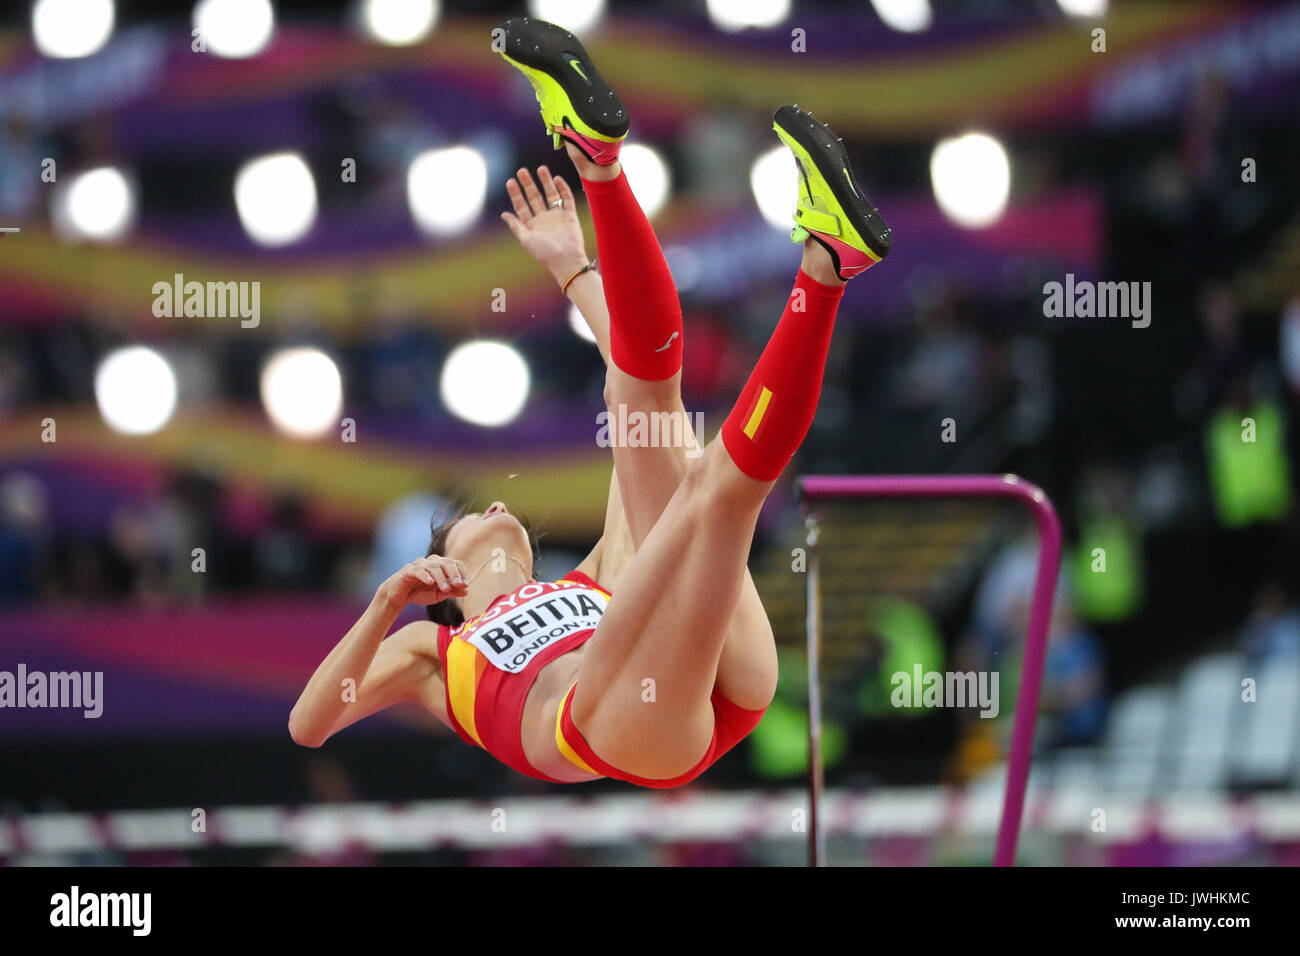 Ruth Beitia, Spain, in the women's high jump final on day nine of the IAAF London 2017 world Championships at the London Stadium. © Paul Davey. - Stock Image